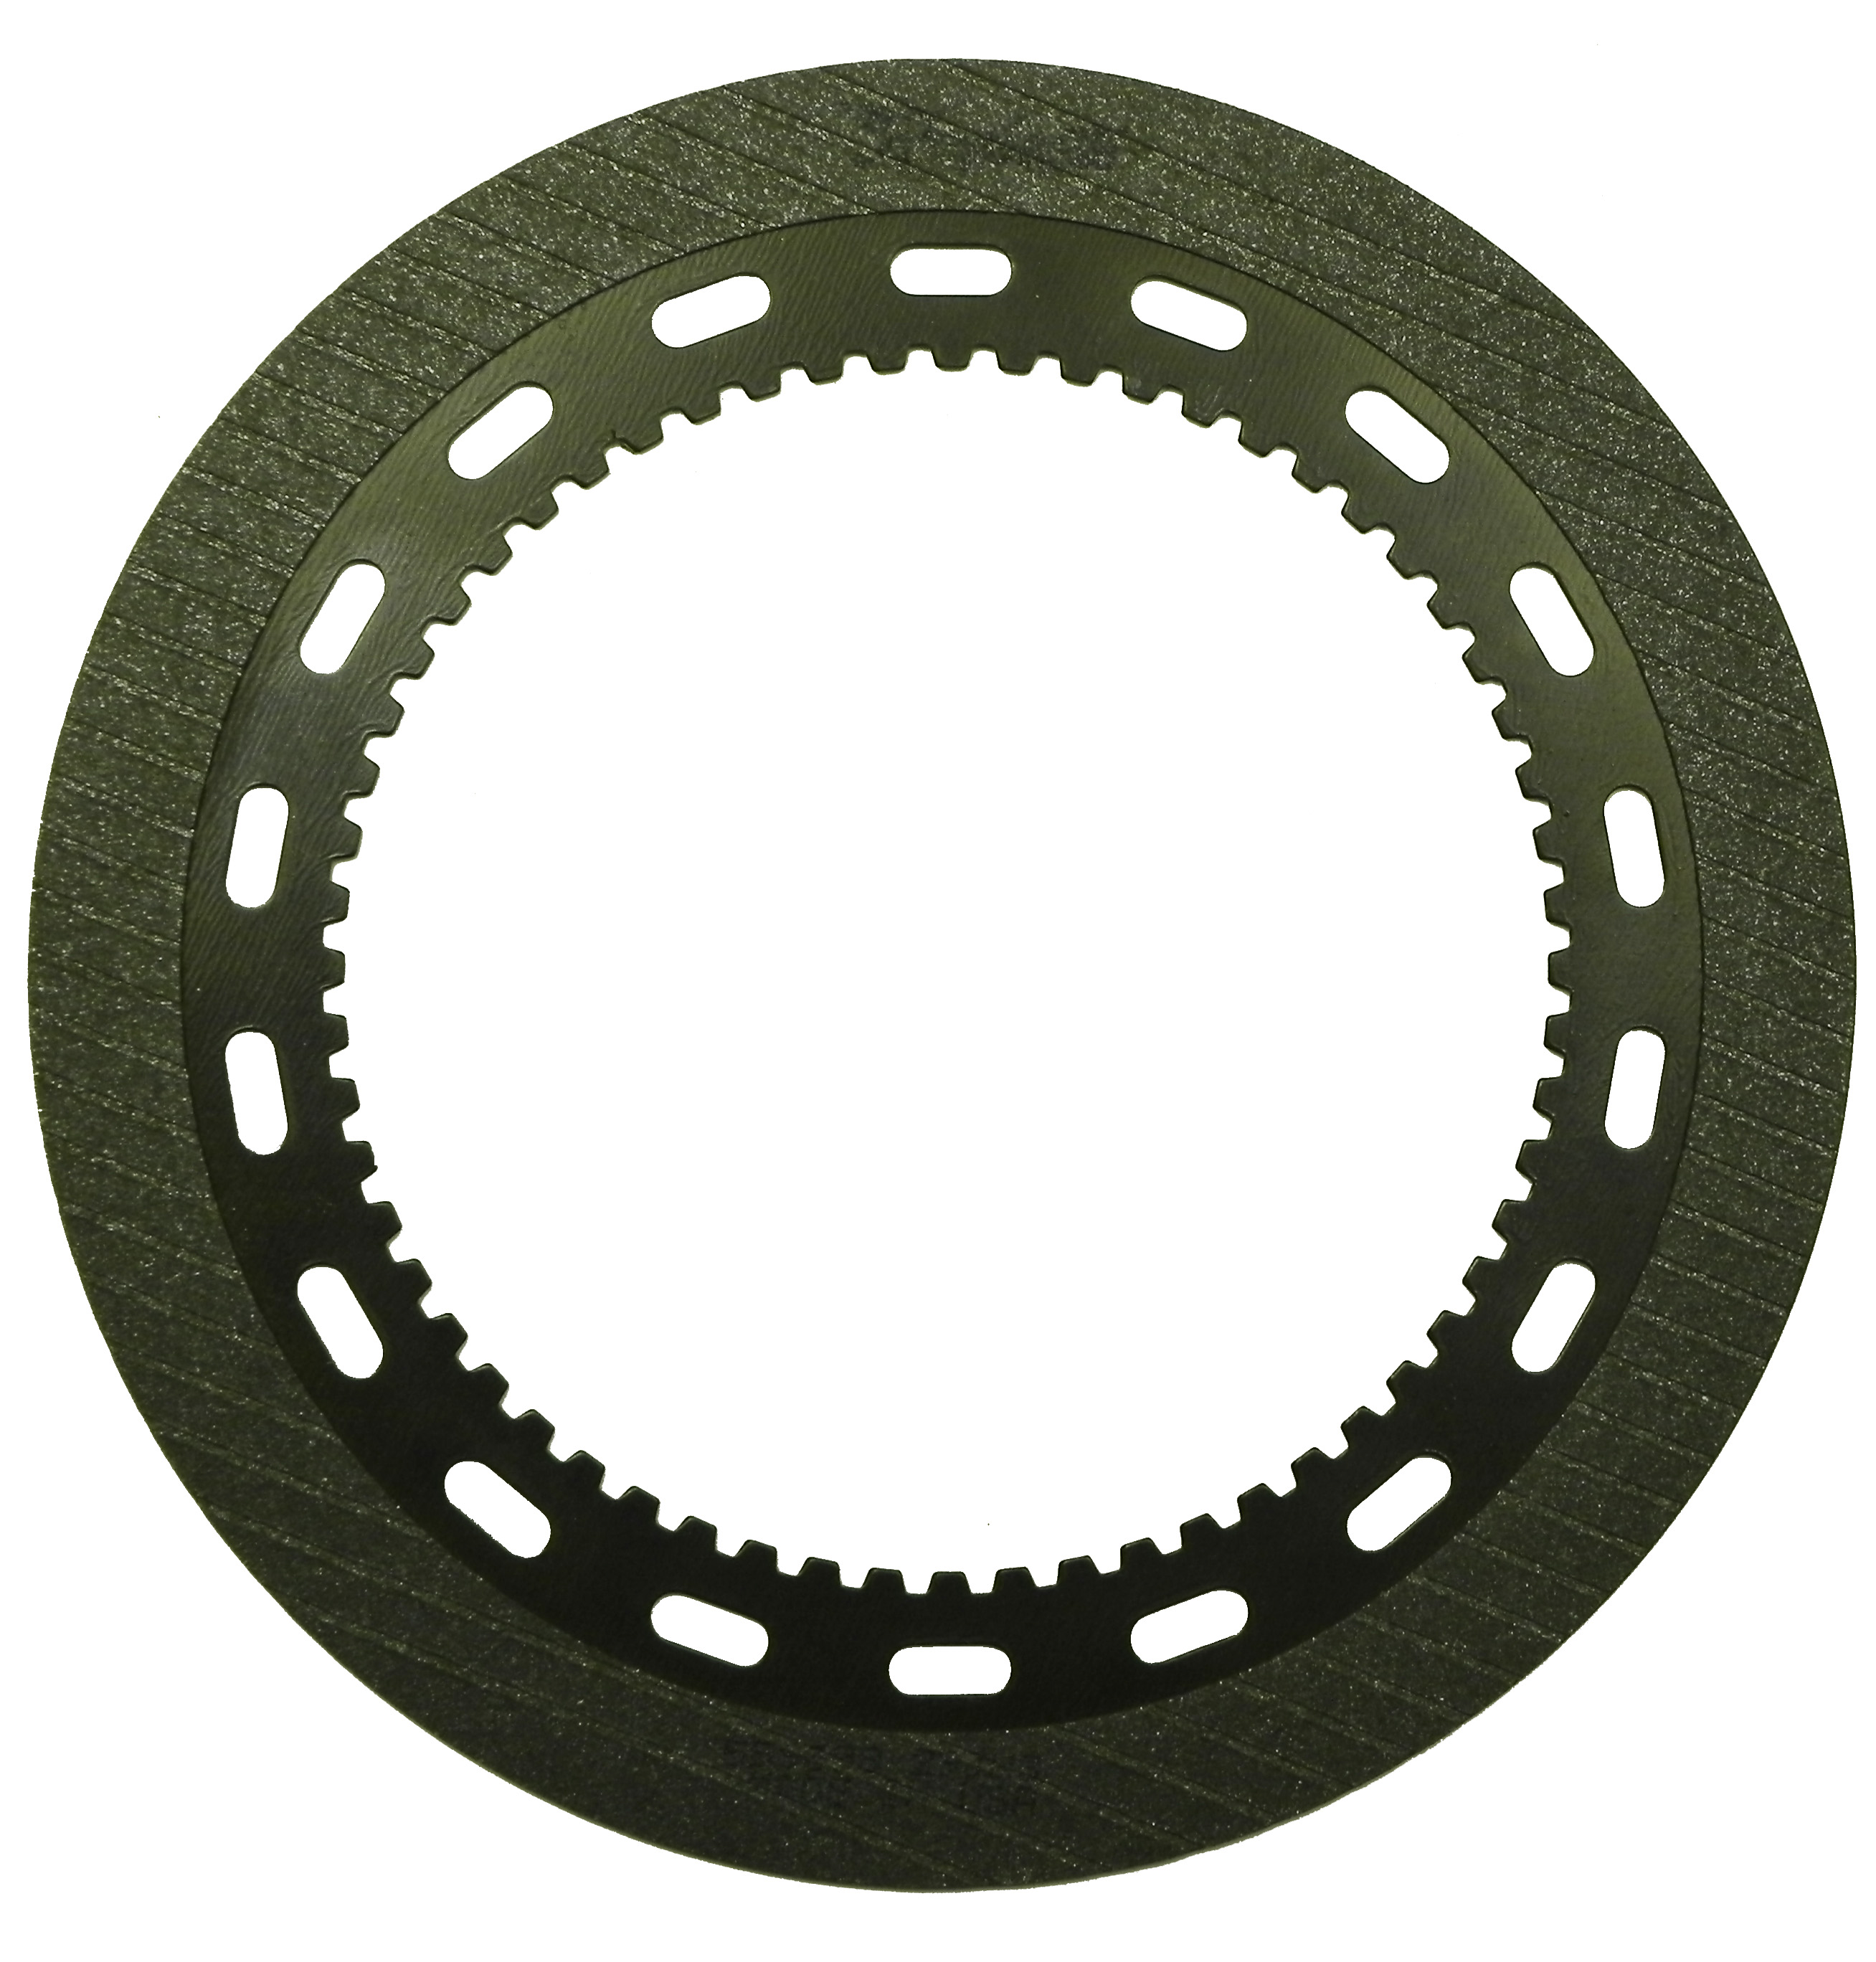 R559698 | 1969-1986 Friction Clutch Plate Graphitic Intermediate Graphitic